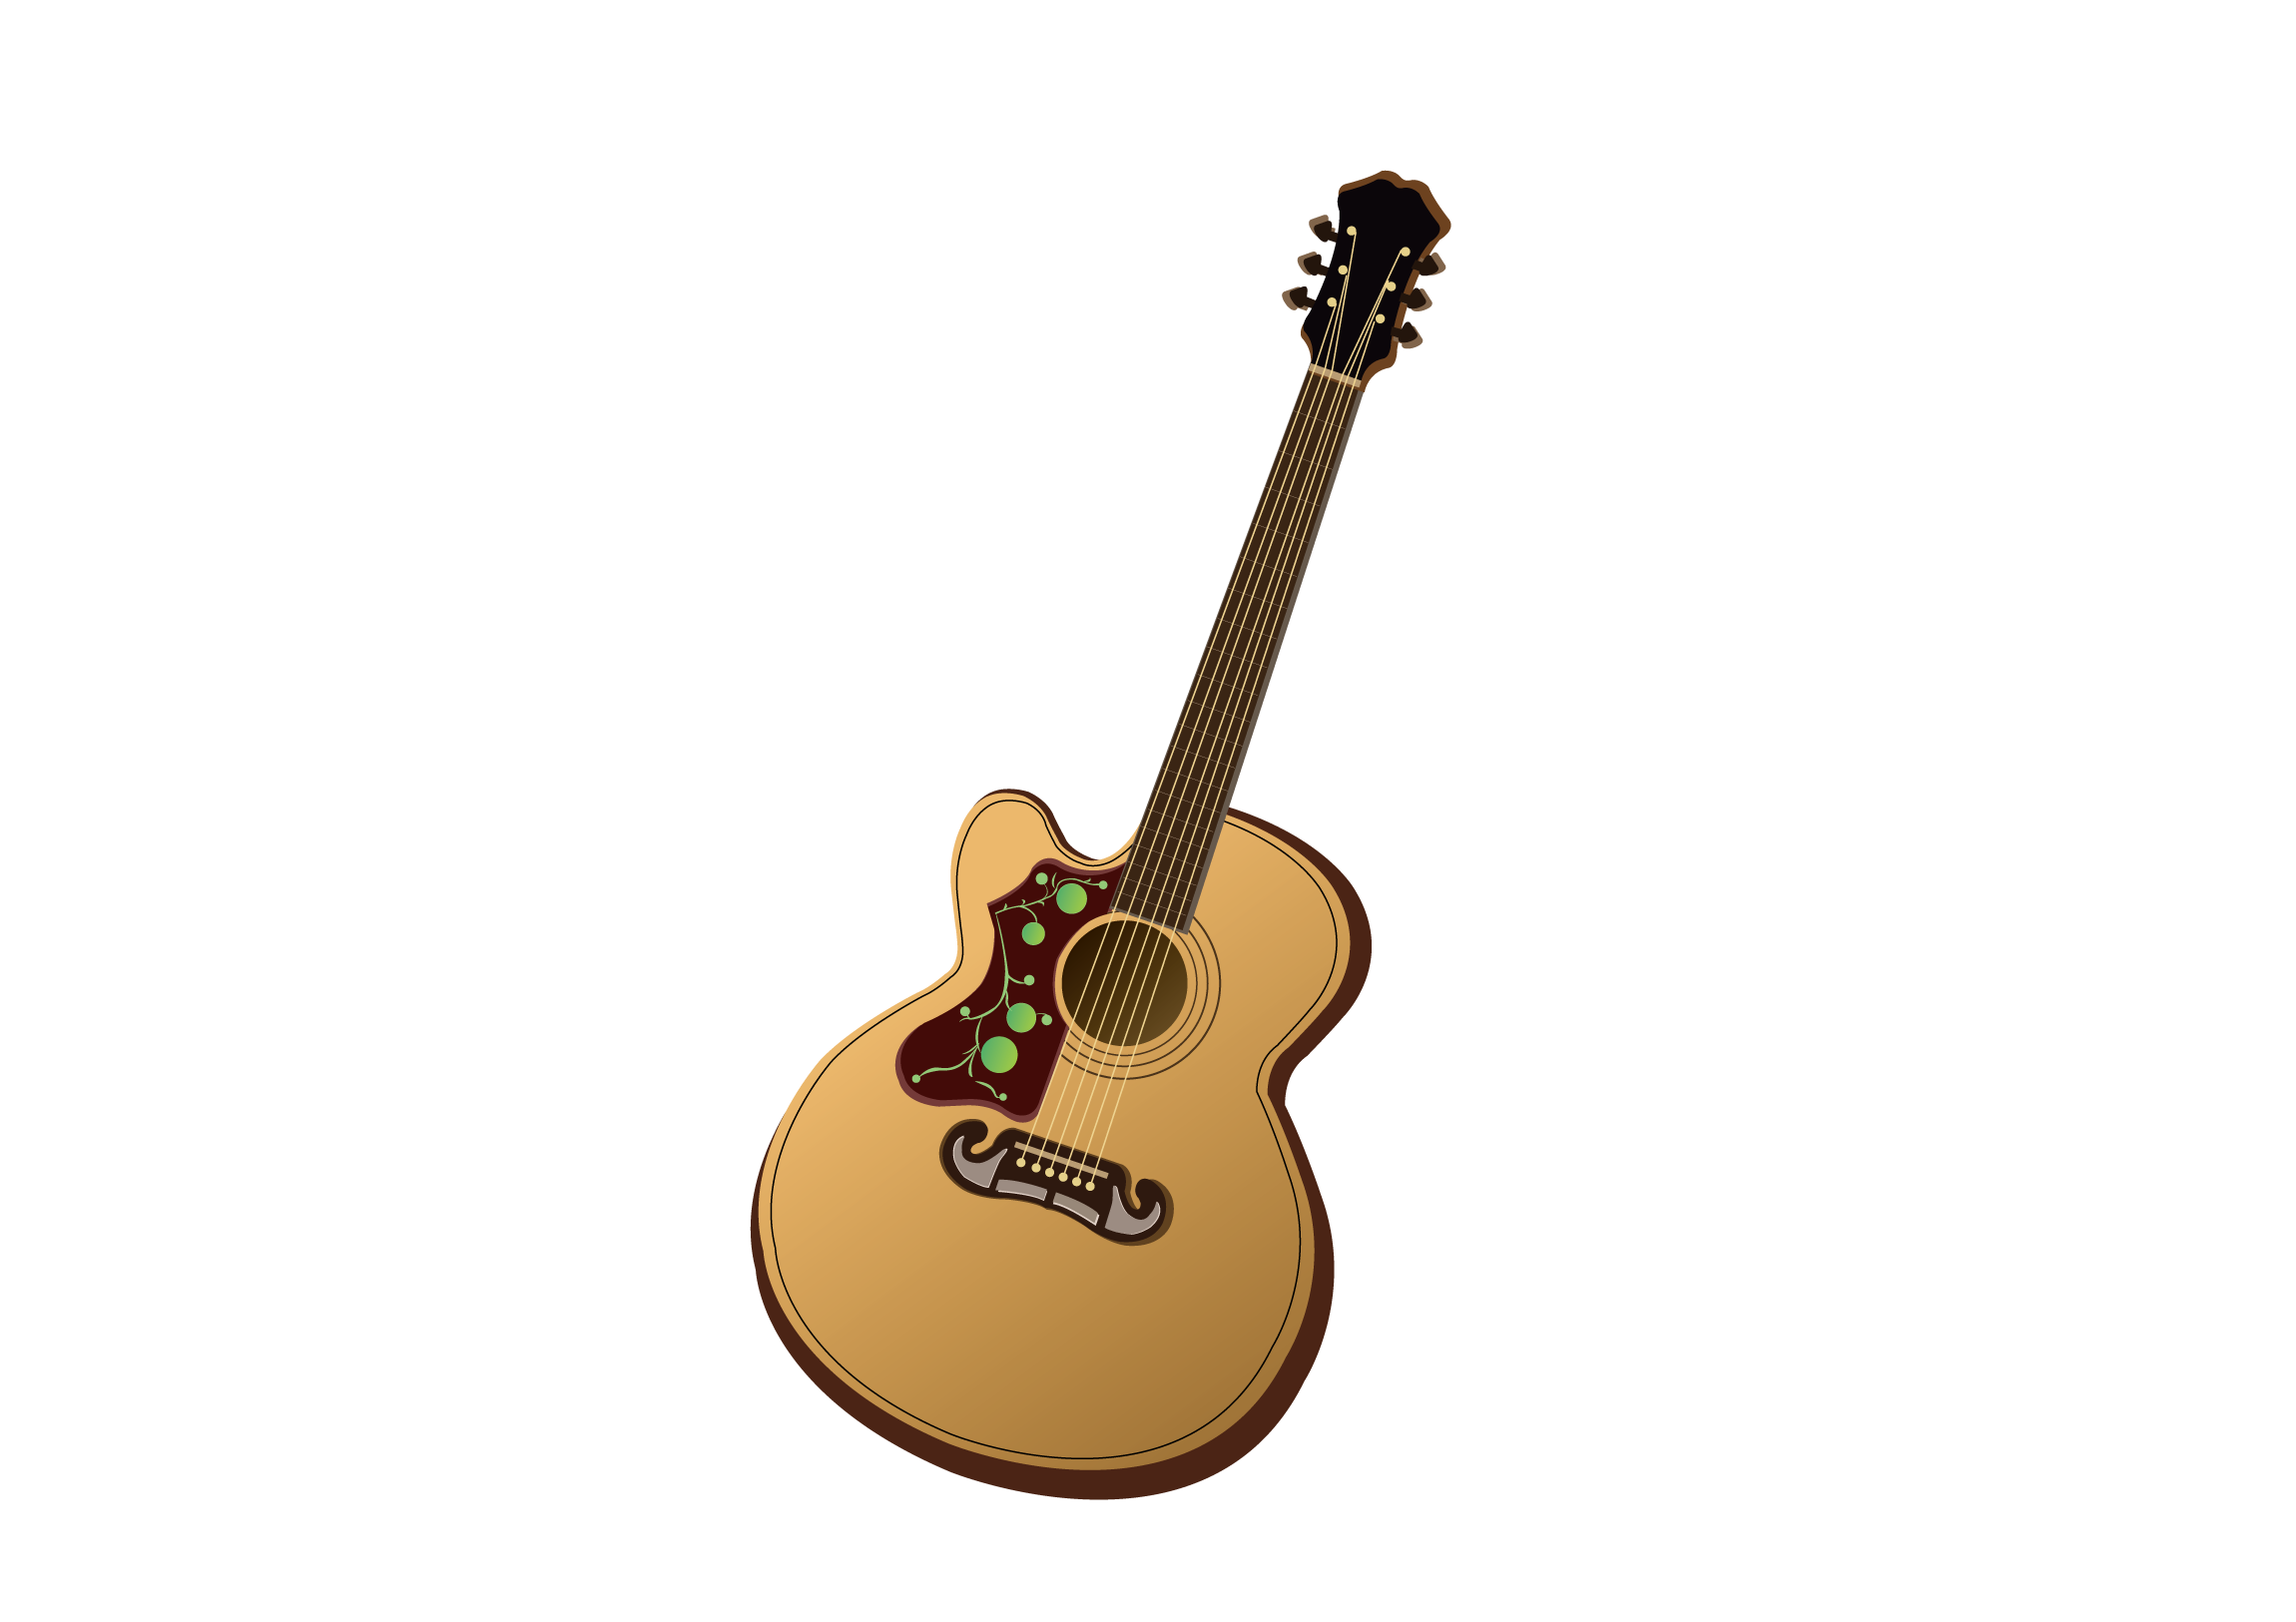 png royalty free download Pixabay folk. Vector ai guitar